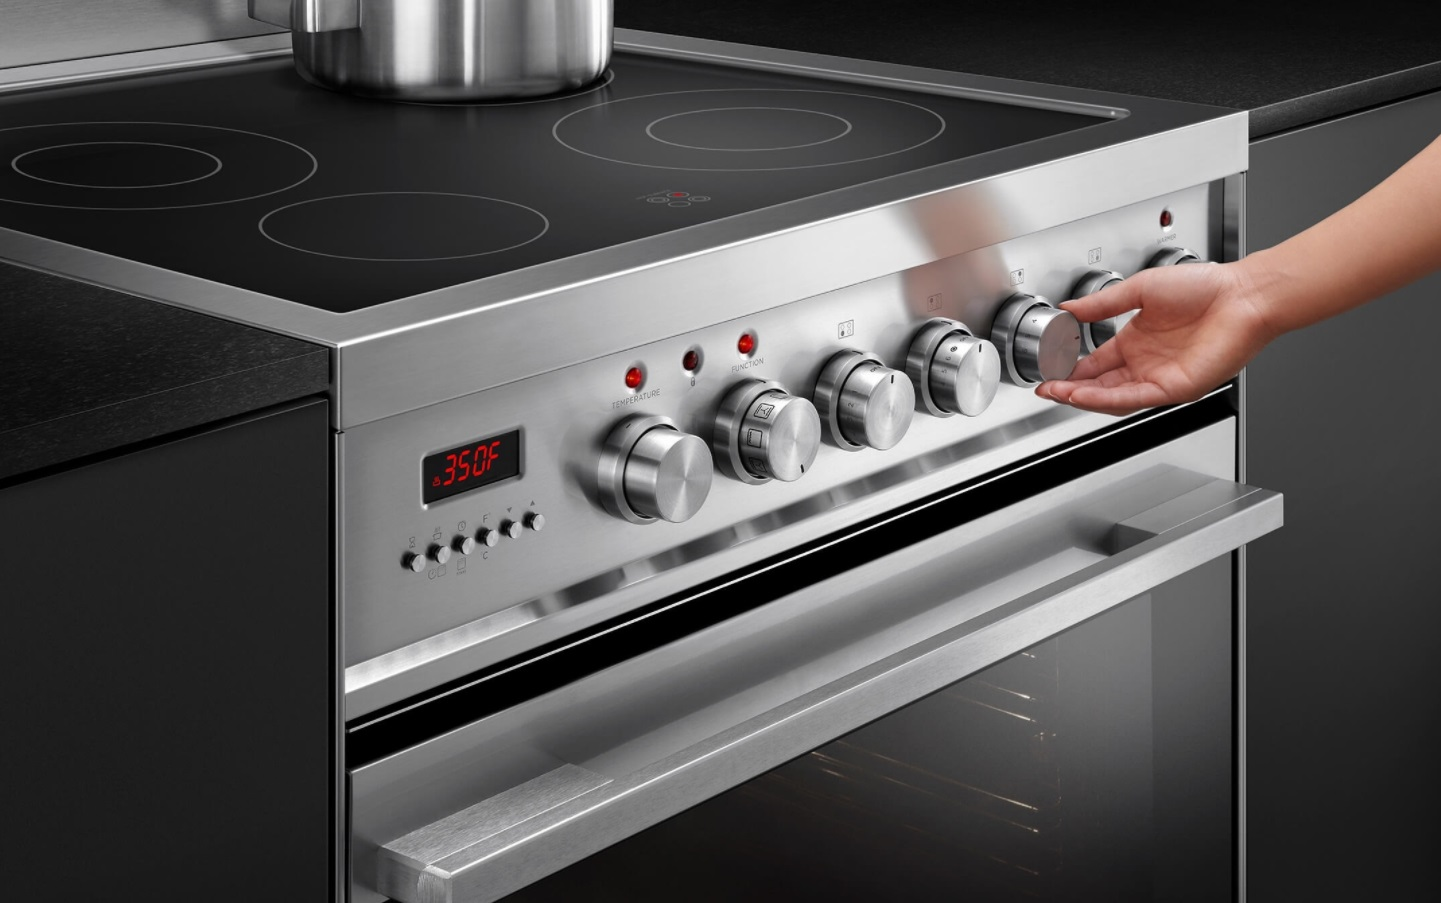 Top 5 Best Electric Ranges Of 2020